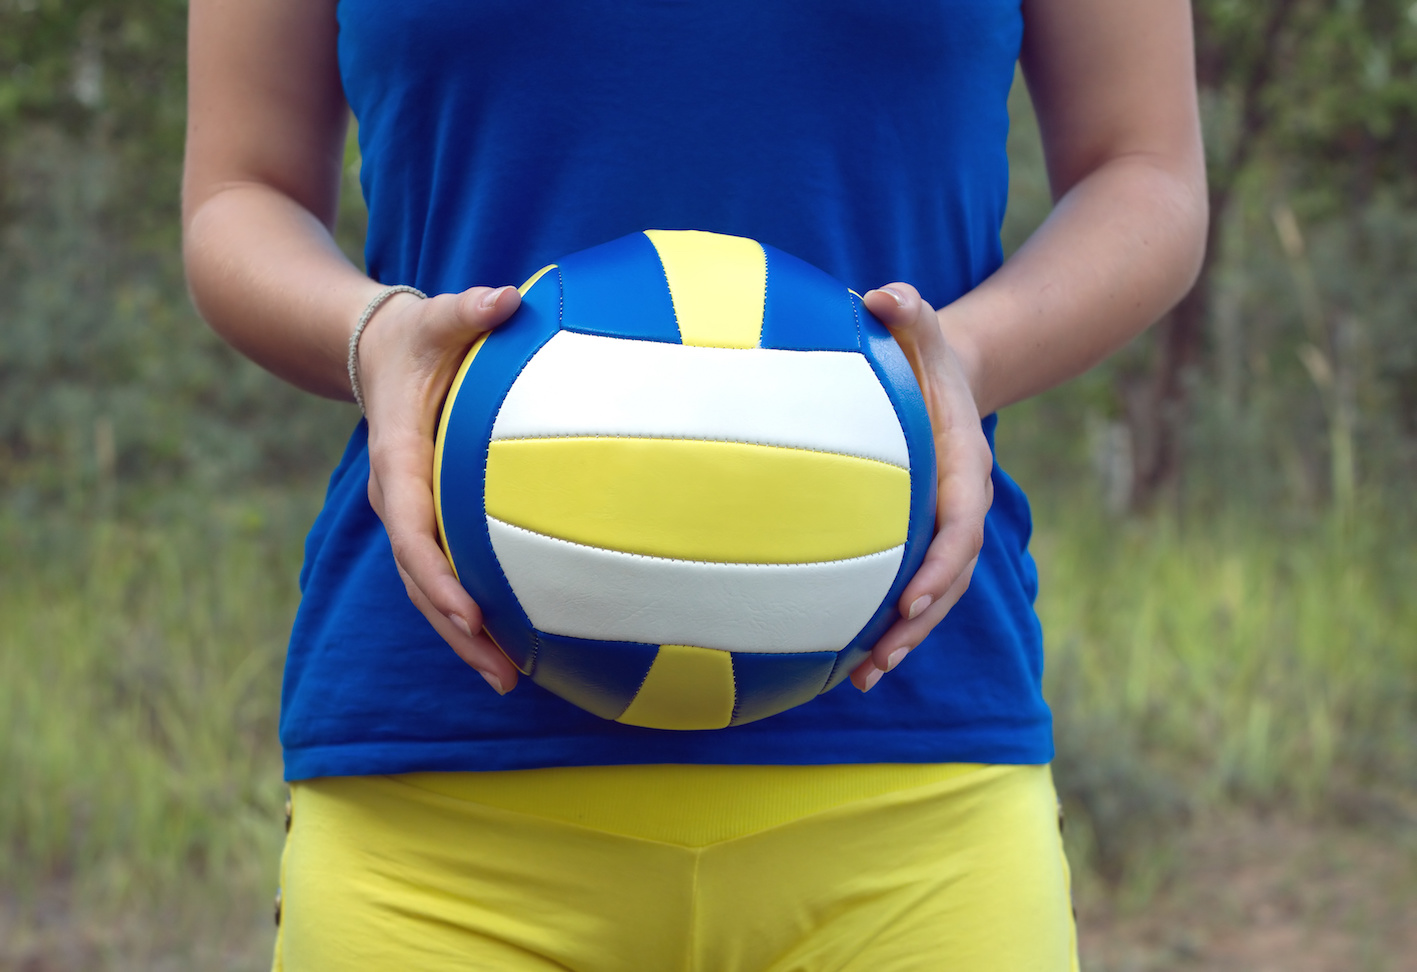 Girl Holding A Colorful Sports Ball For Volleyball Closeup